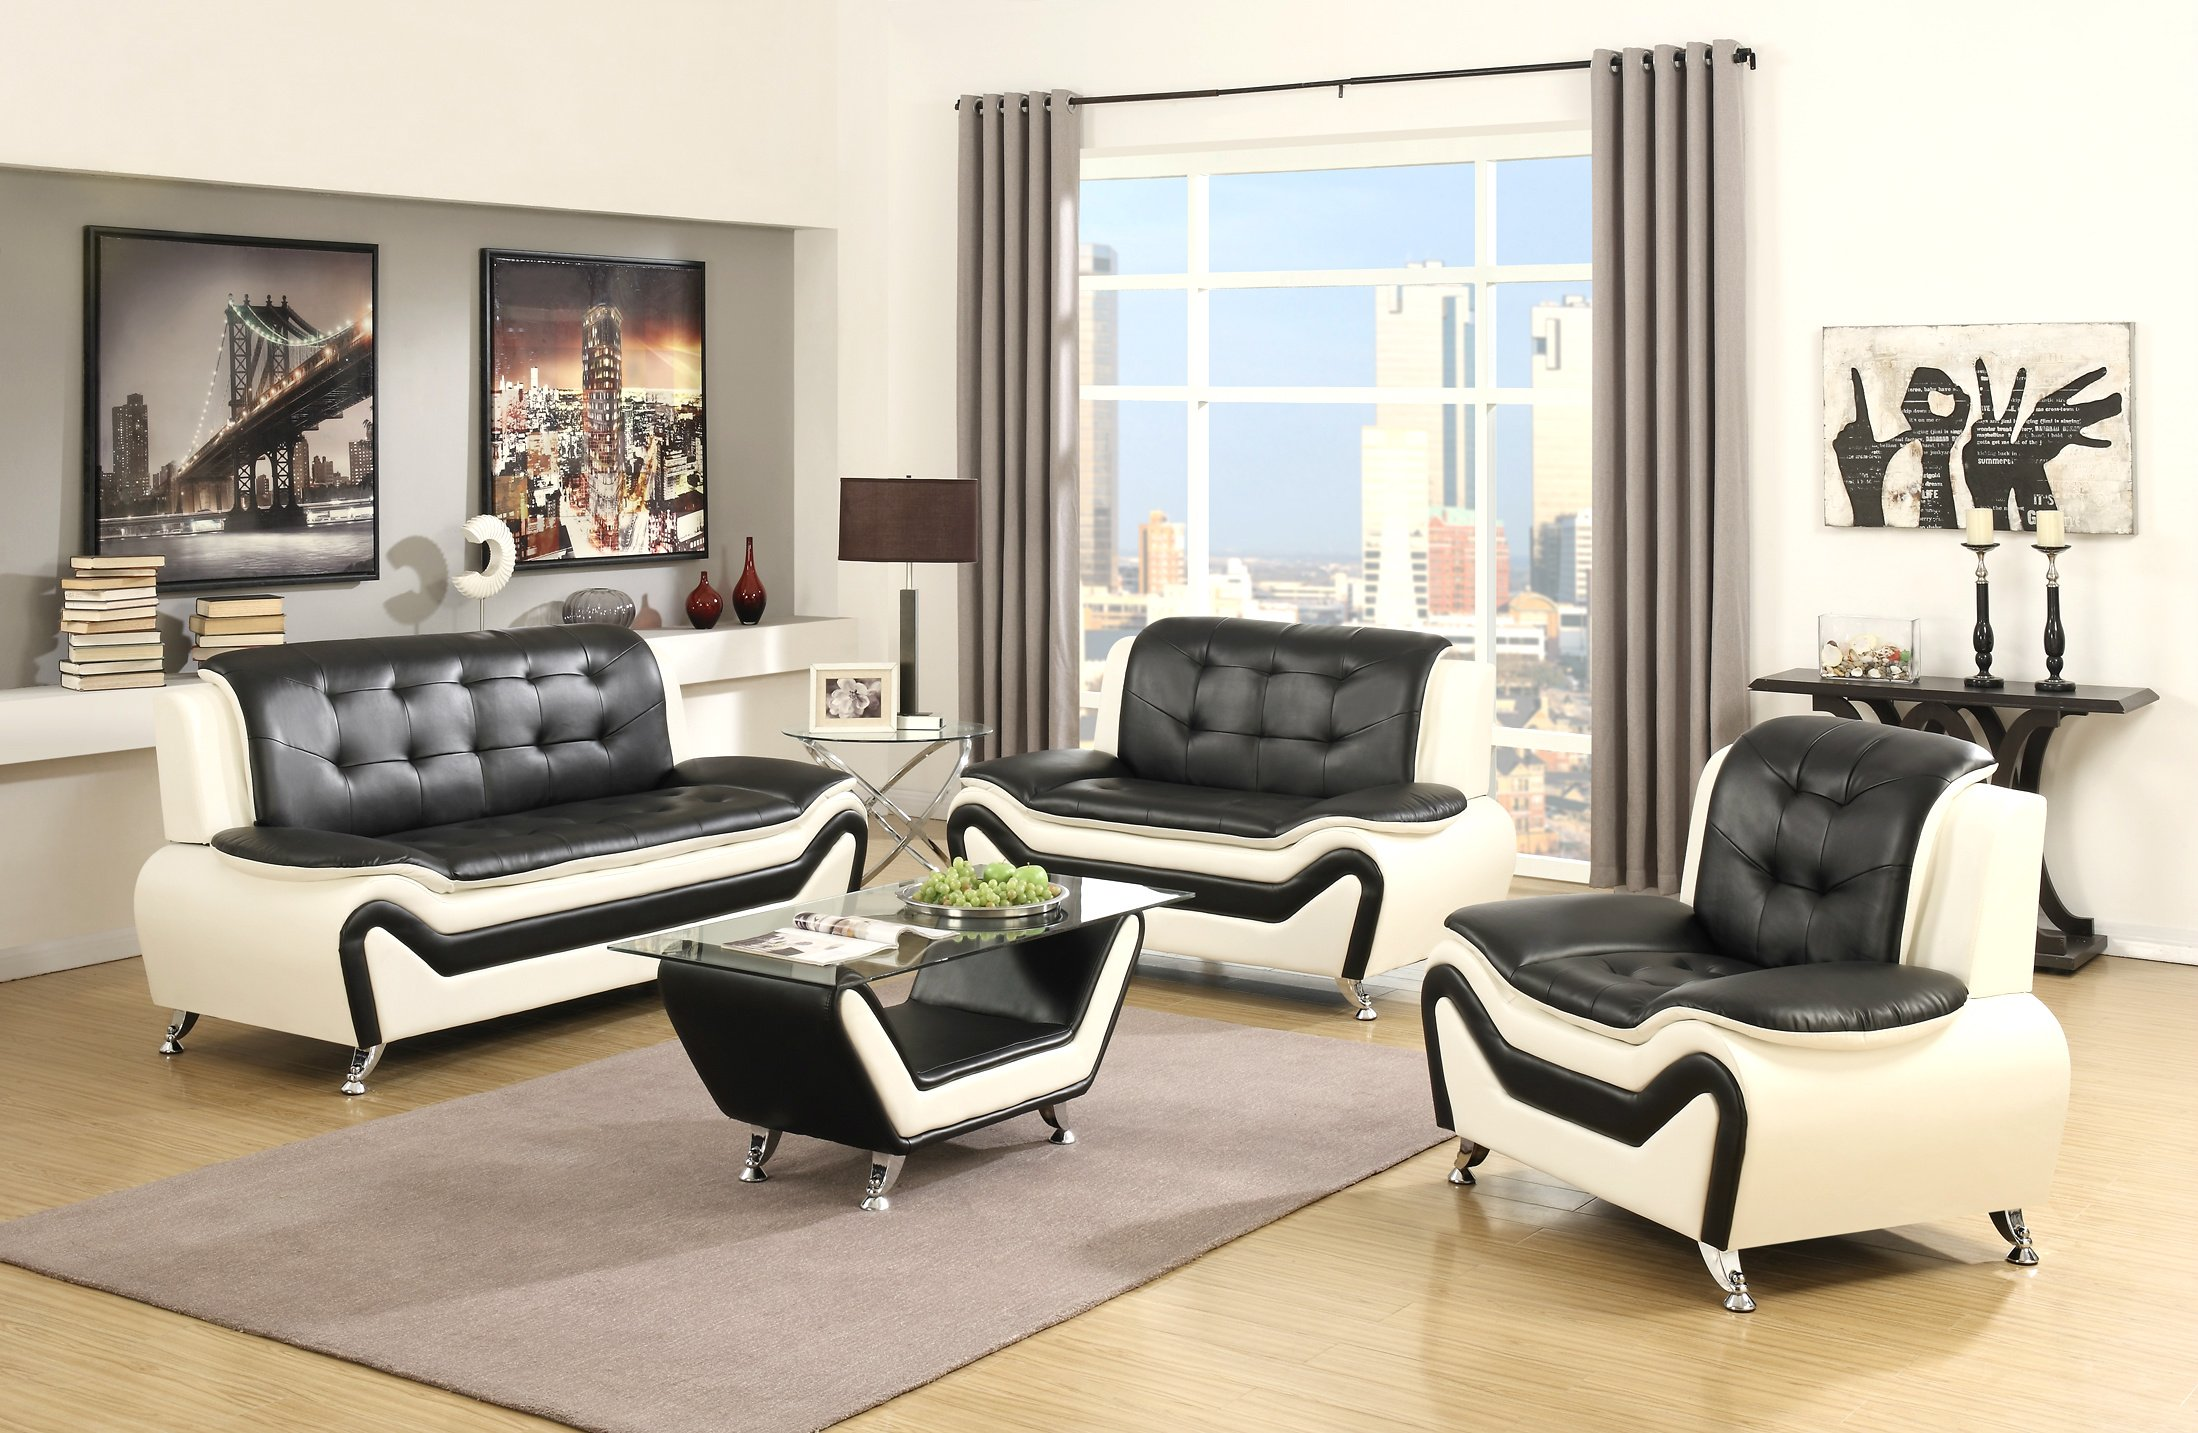 US Pride Furniture 4 Piece Modern Bonded Leather Sofa Set with Sofa, Loveseat, Chair, and Coffee Table, White/Black by US Pride Furniture